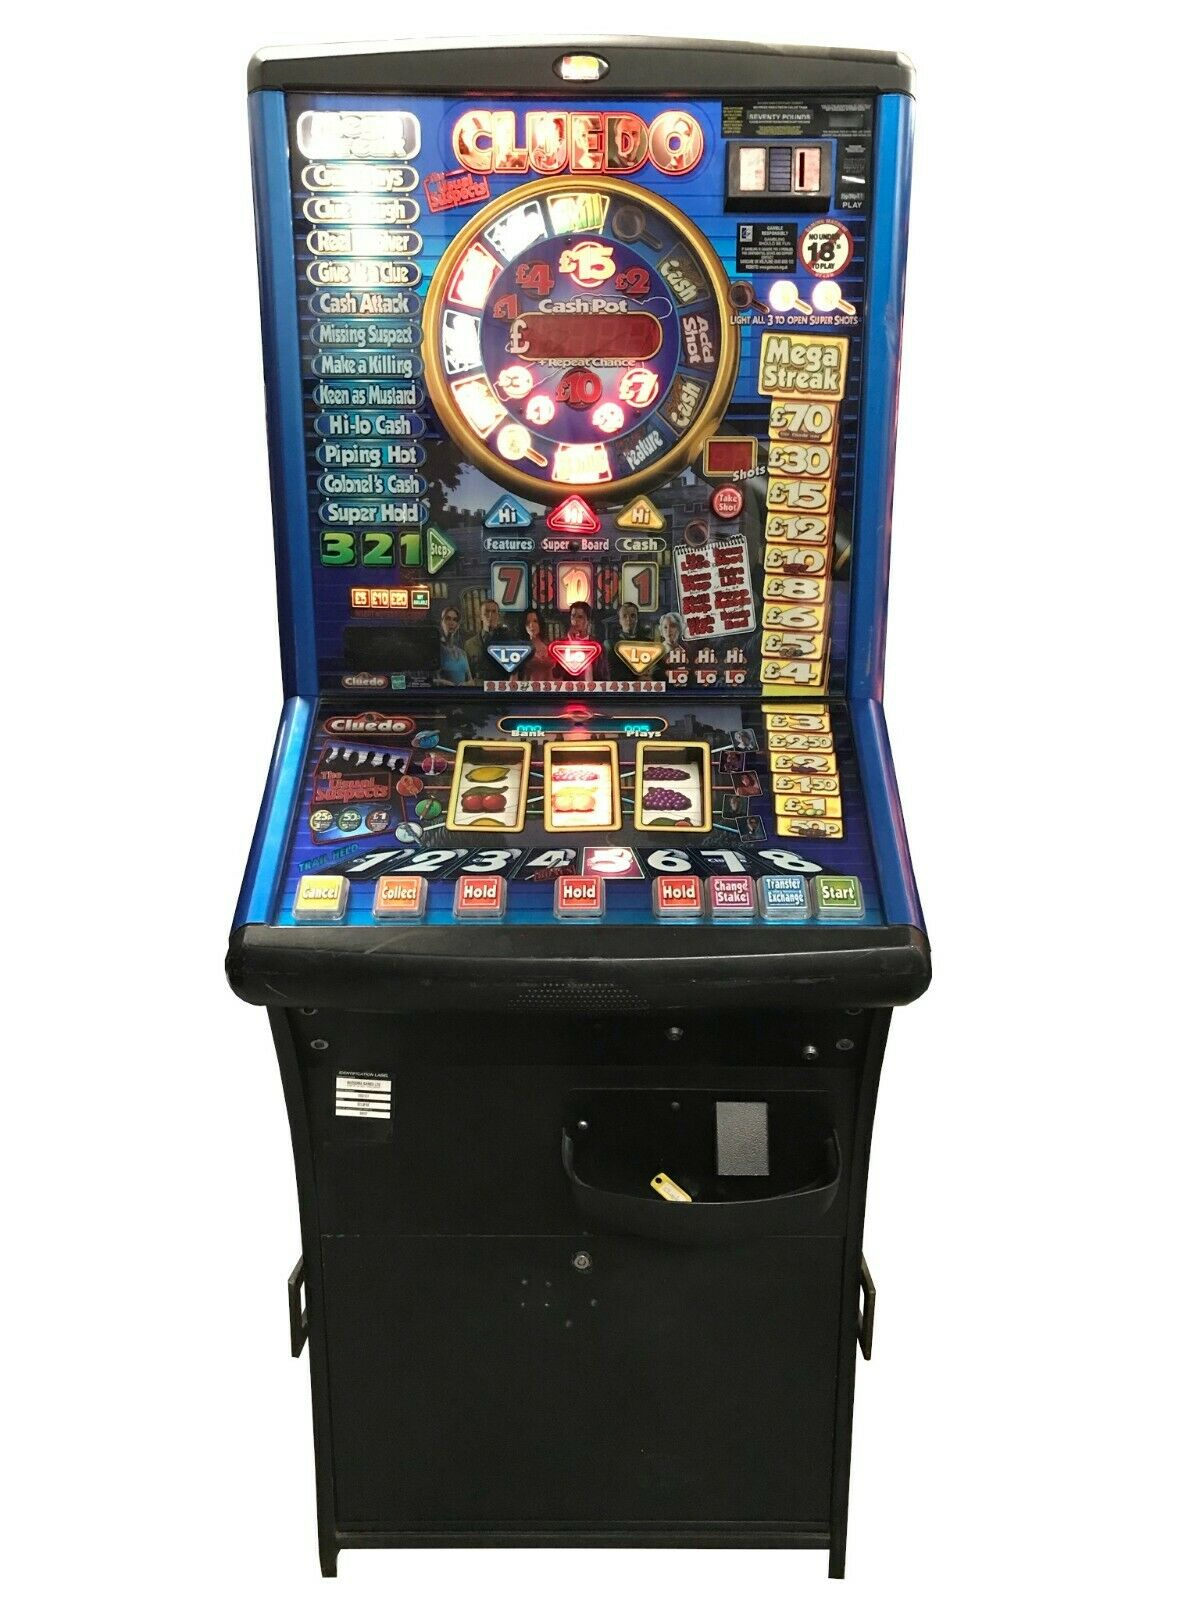 Cluedo The Usual Suspects Fruit Machine - Ready to Play - Games Room Home Bar